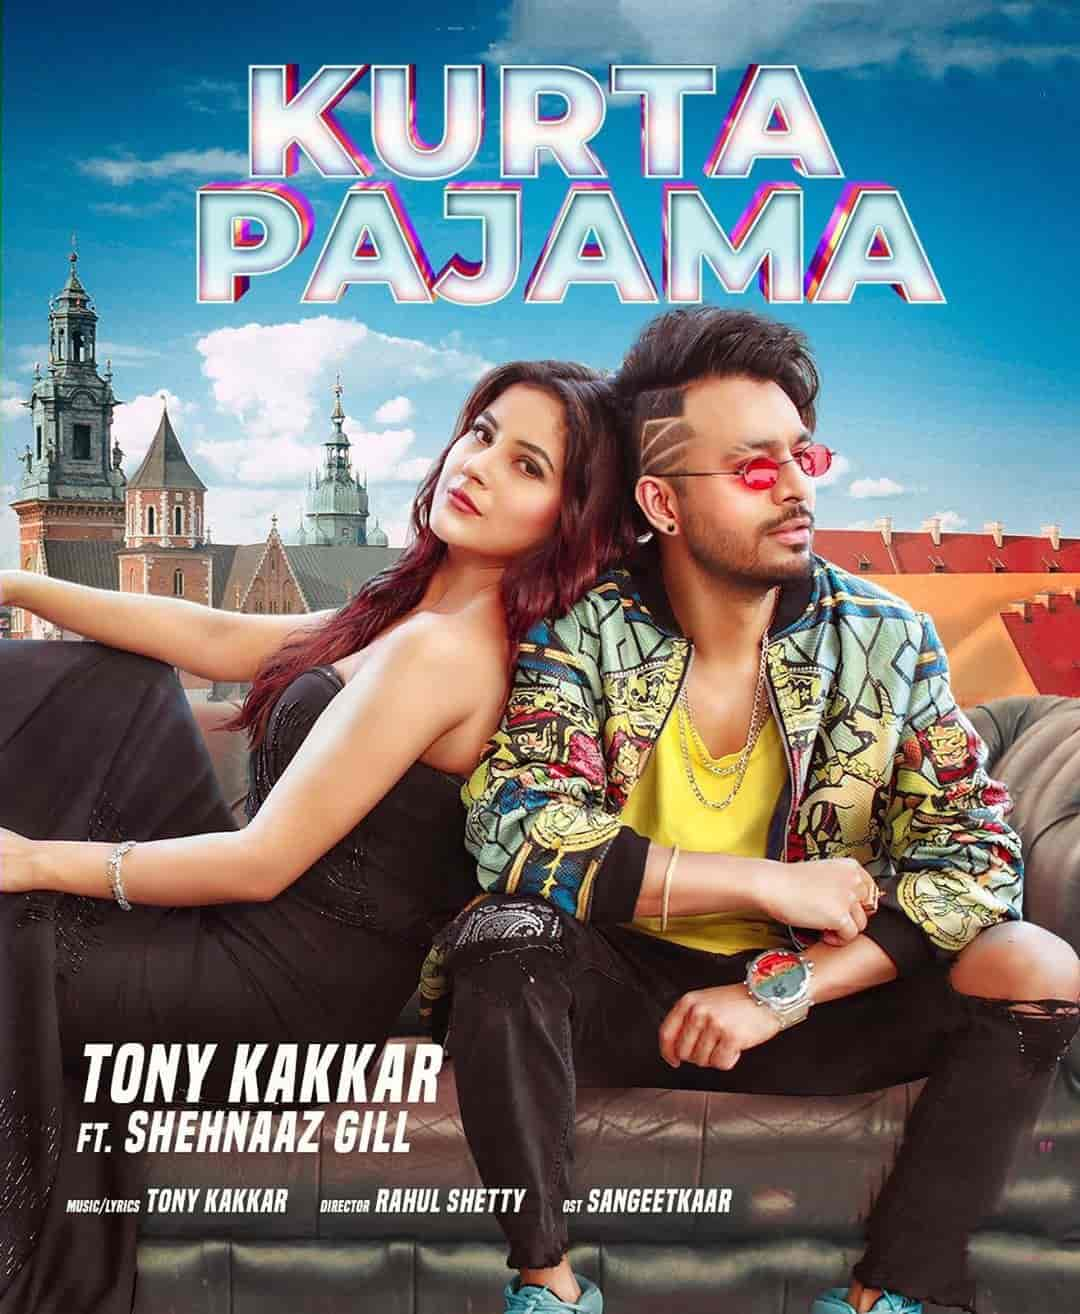 Kurta Pajama Hindi Song Image By Tony Kakkar and Shehnaaz Gill